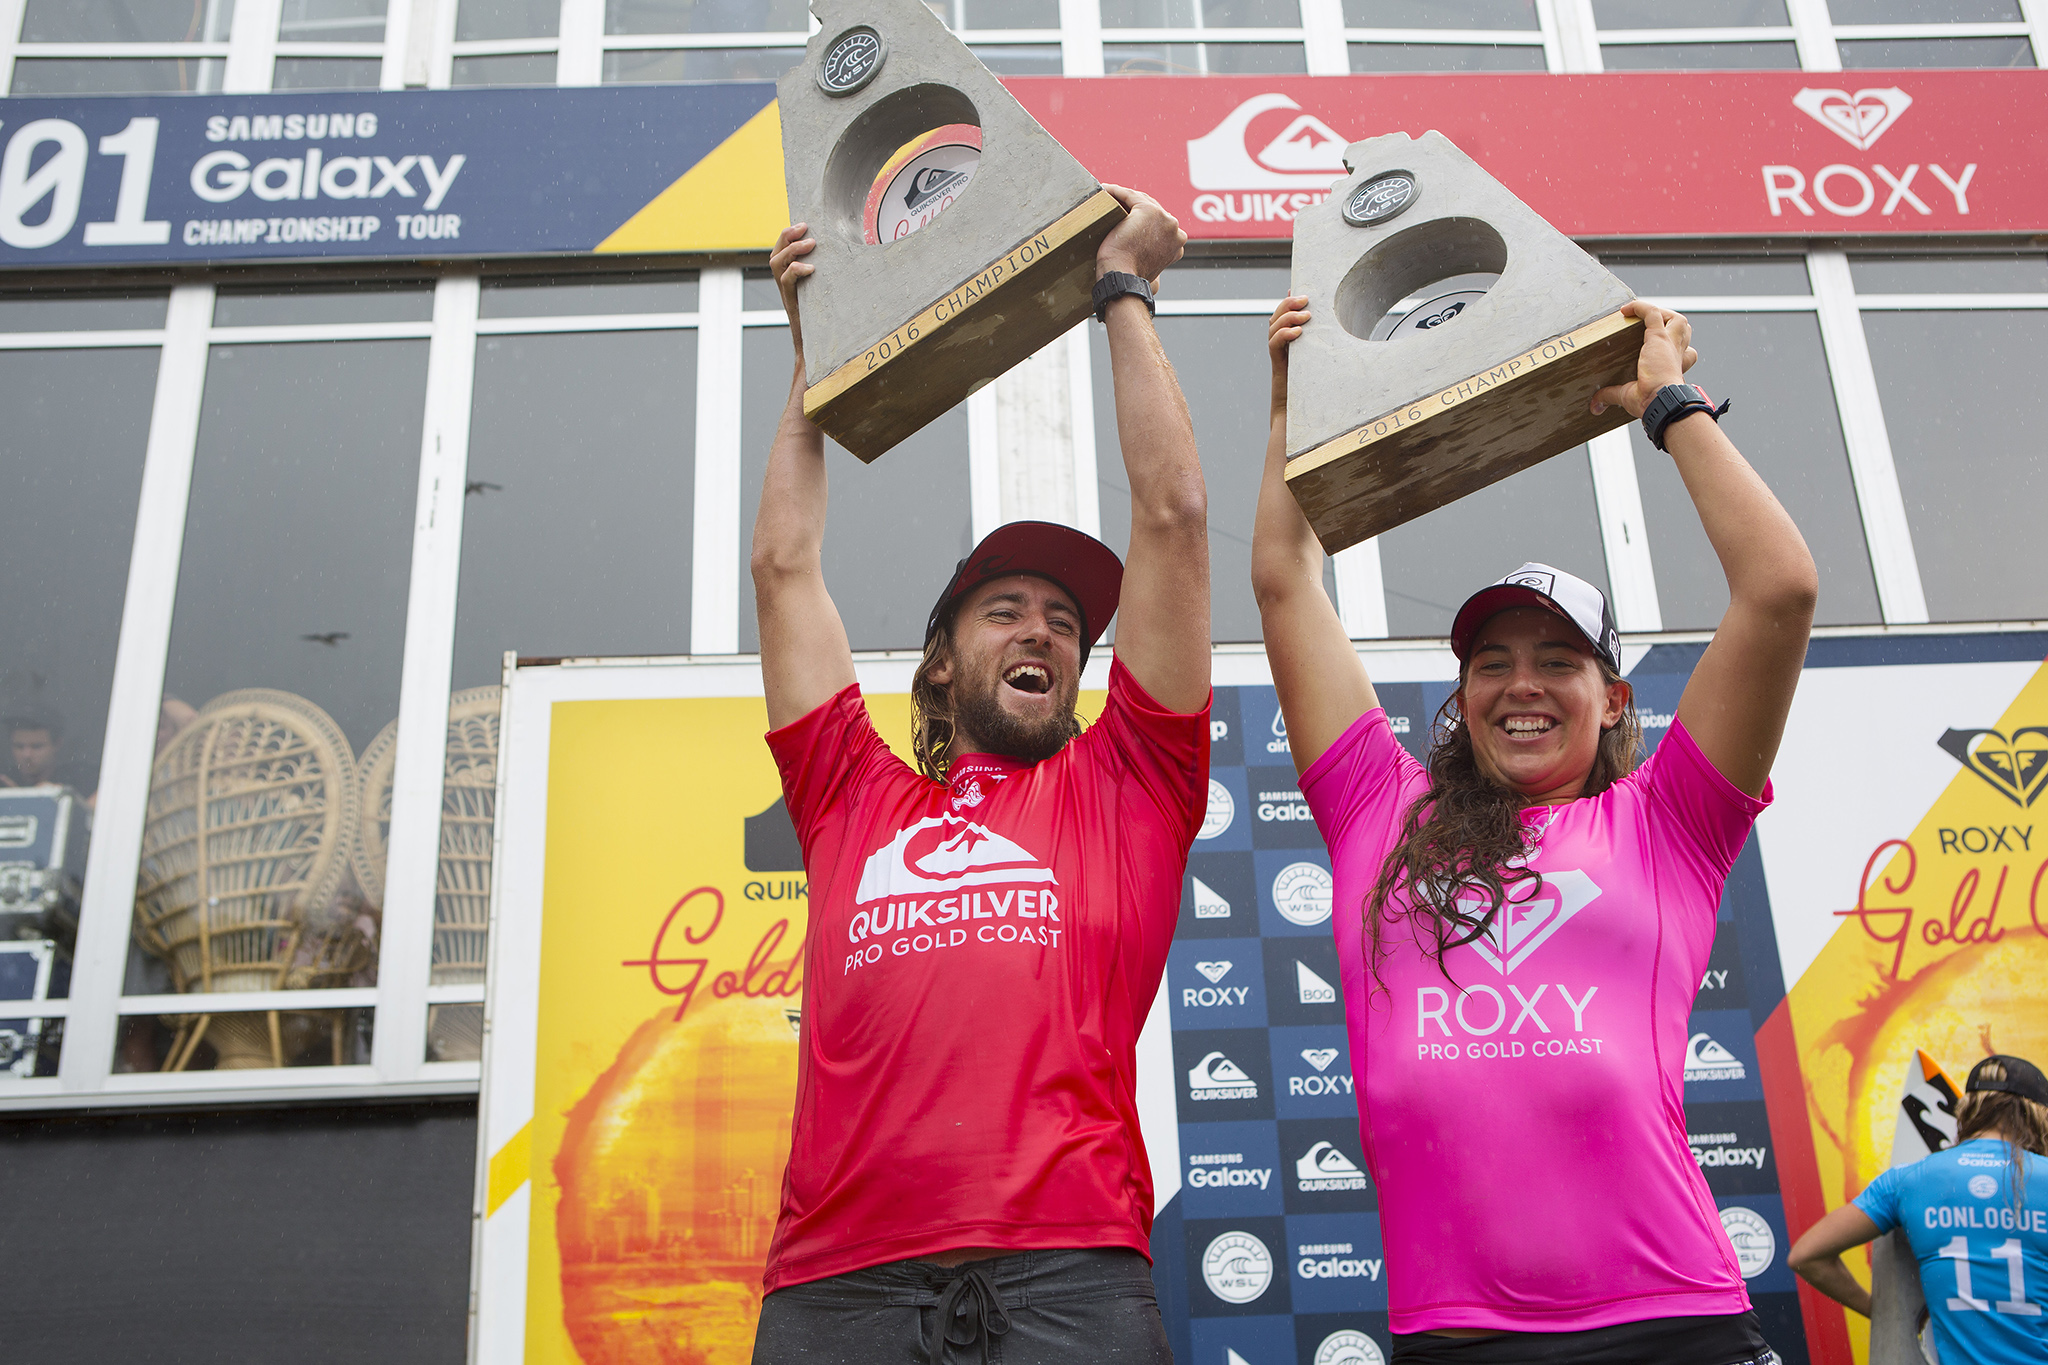 Matt Wilkinson and Tyler Wright both of Australia (pictured) celebrating during prizegiving after winning the Quiksilver and Roxy Pro's respectively at Snapper Rocks on the Gold Coast of Australia on Wednesday March 16, 2016. PHOTO: © WSL/ Kirstin Scholtz This is a hand-out image from the World Surf League and is royalty free for editorial use only, no commercial rights granted. The copyright is owned by World Surf League. Sale or license of the images is prohibited. ALL RIGHTS RESERVED.